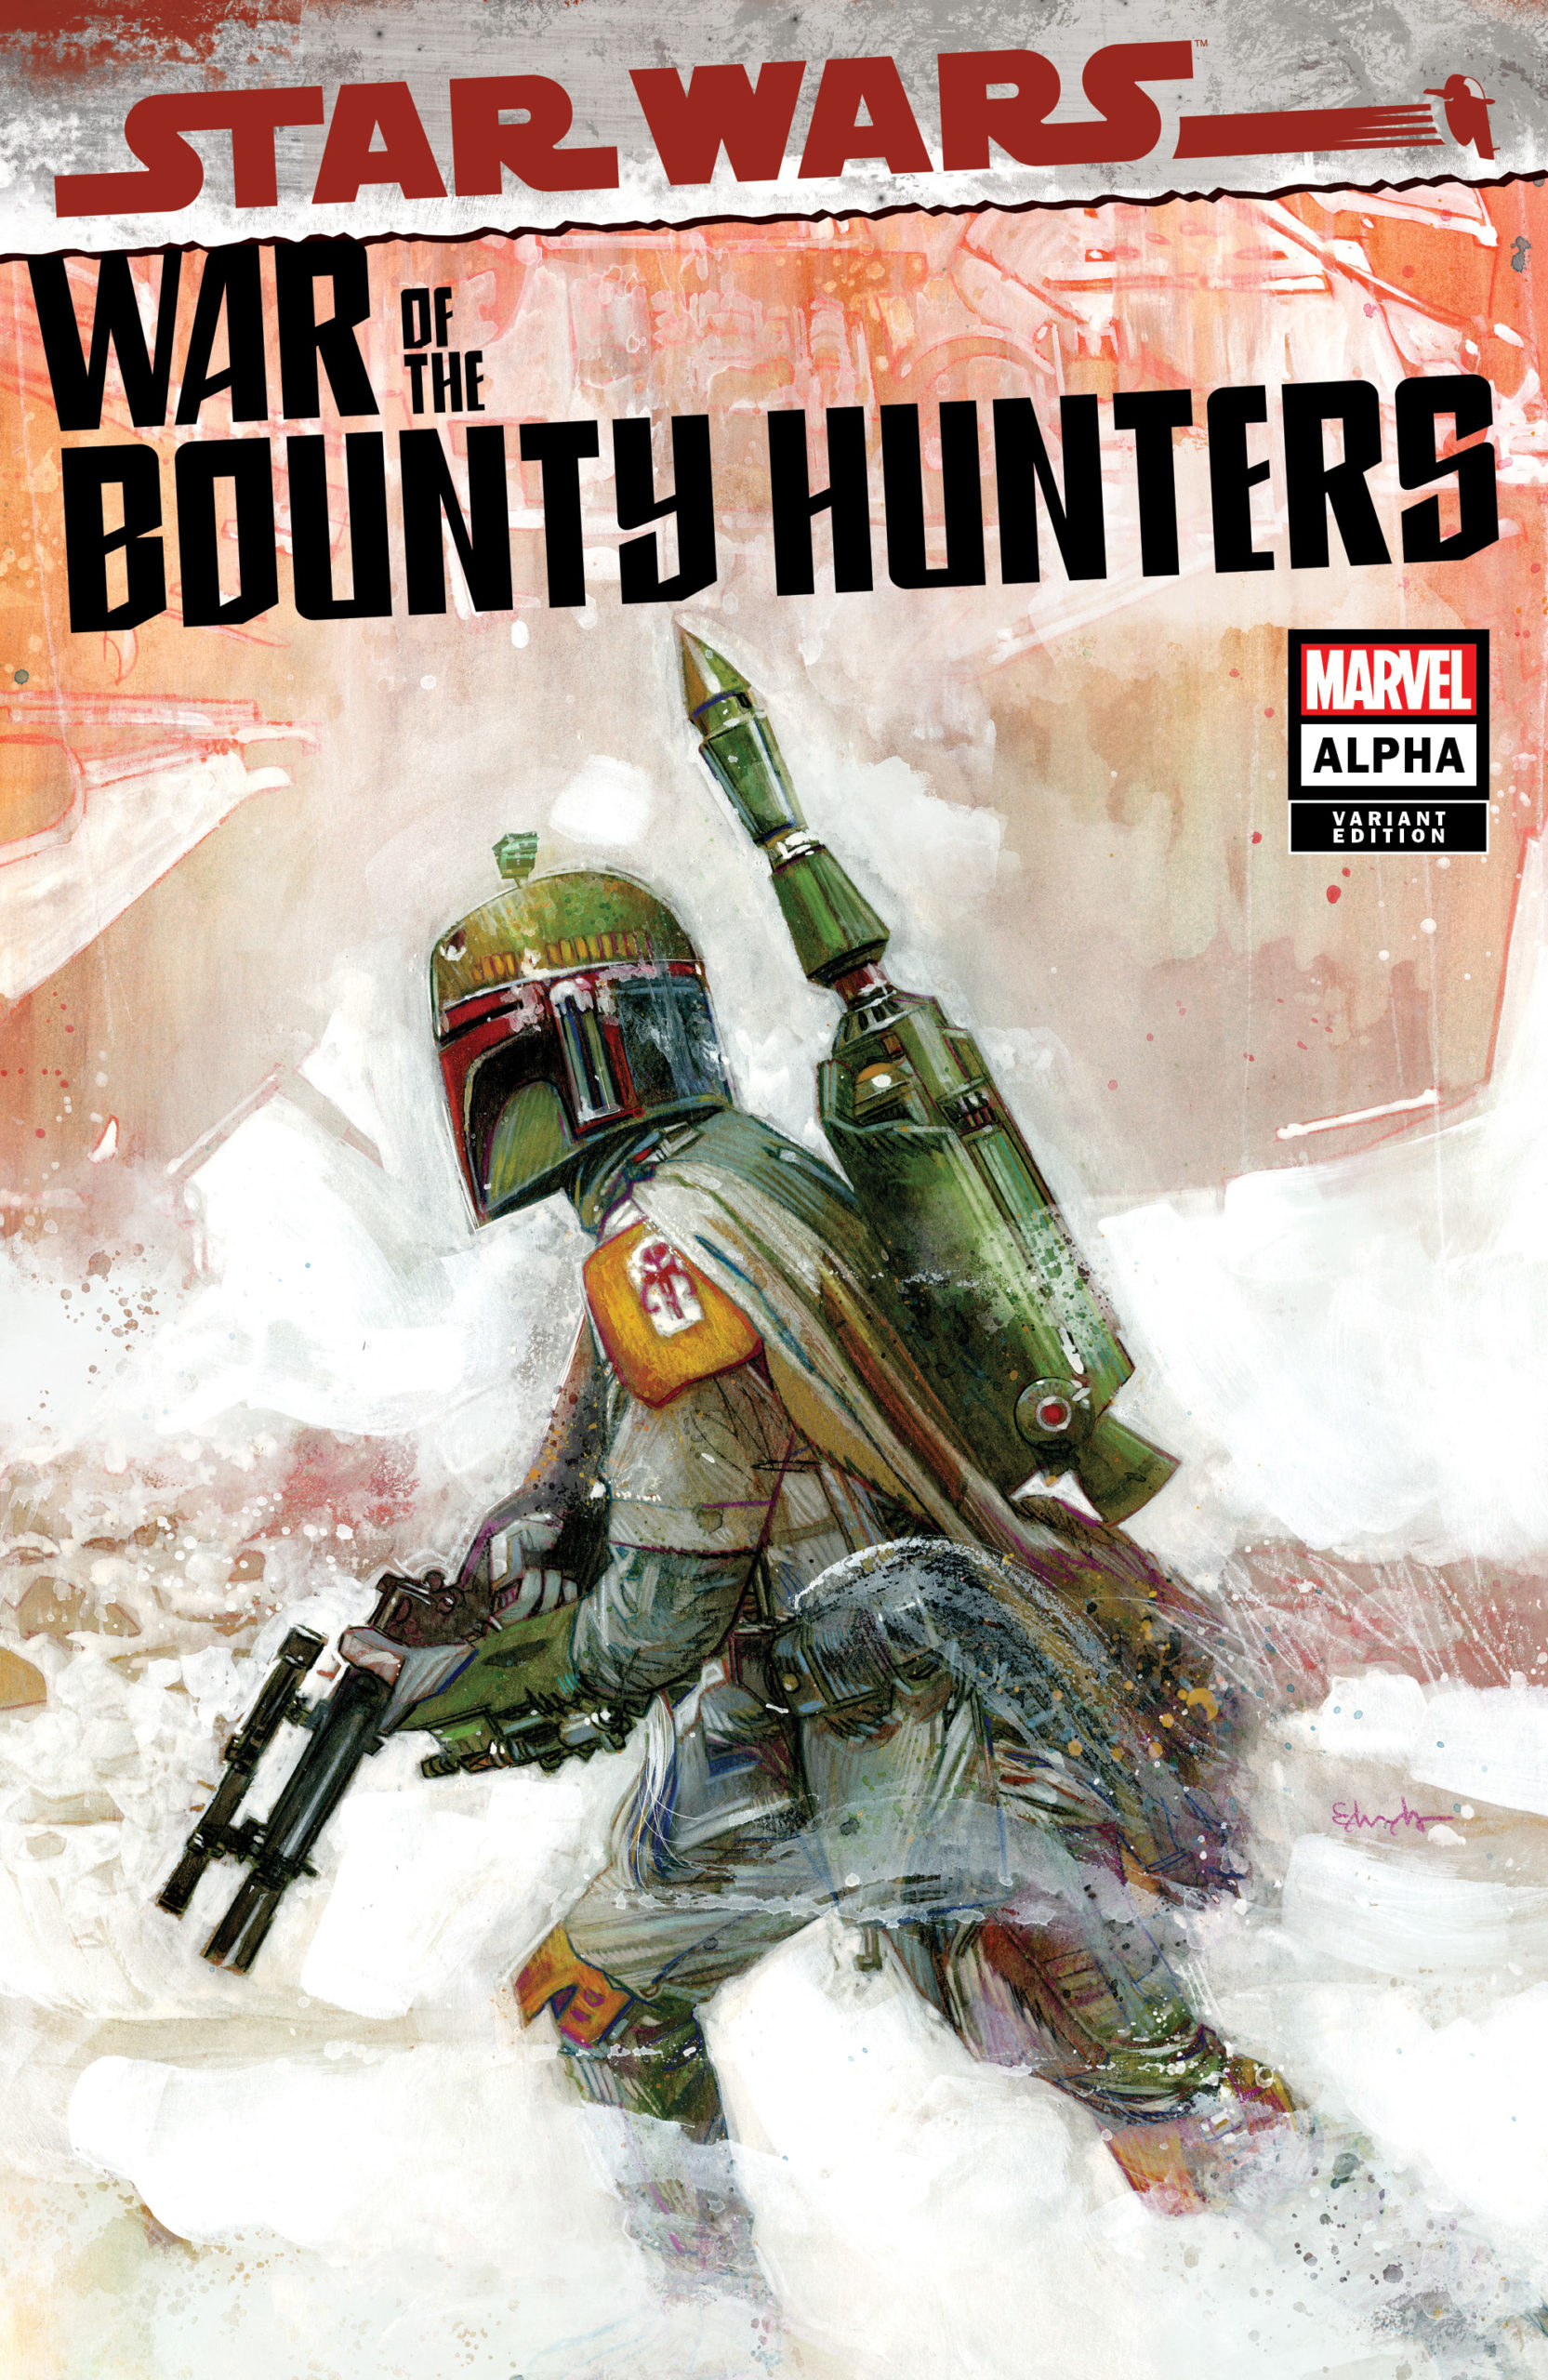 War of the Bounty Hunters Alpha #1 (Tommy Lee Edwards Ultimate Comics Variant Cover) (05.05.2021)